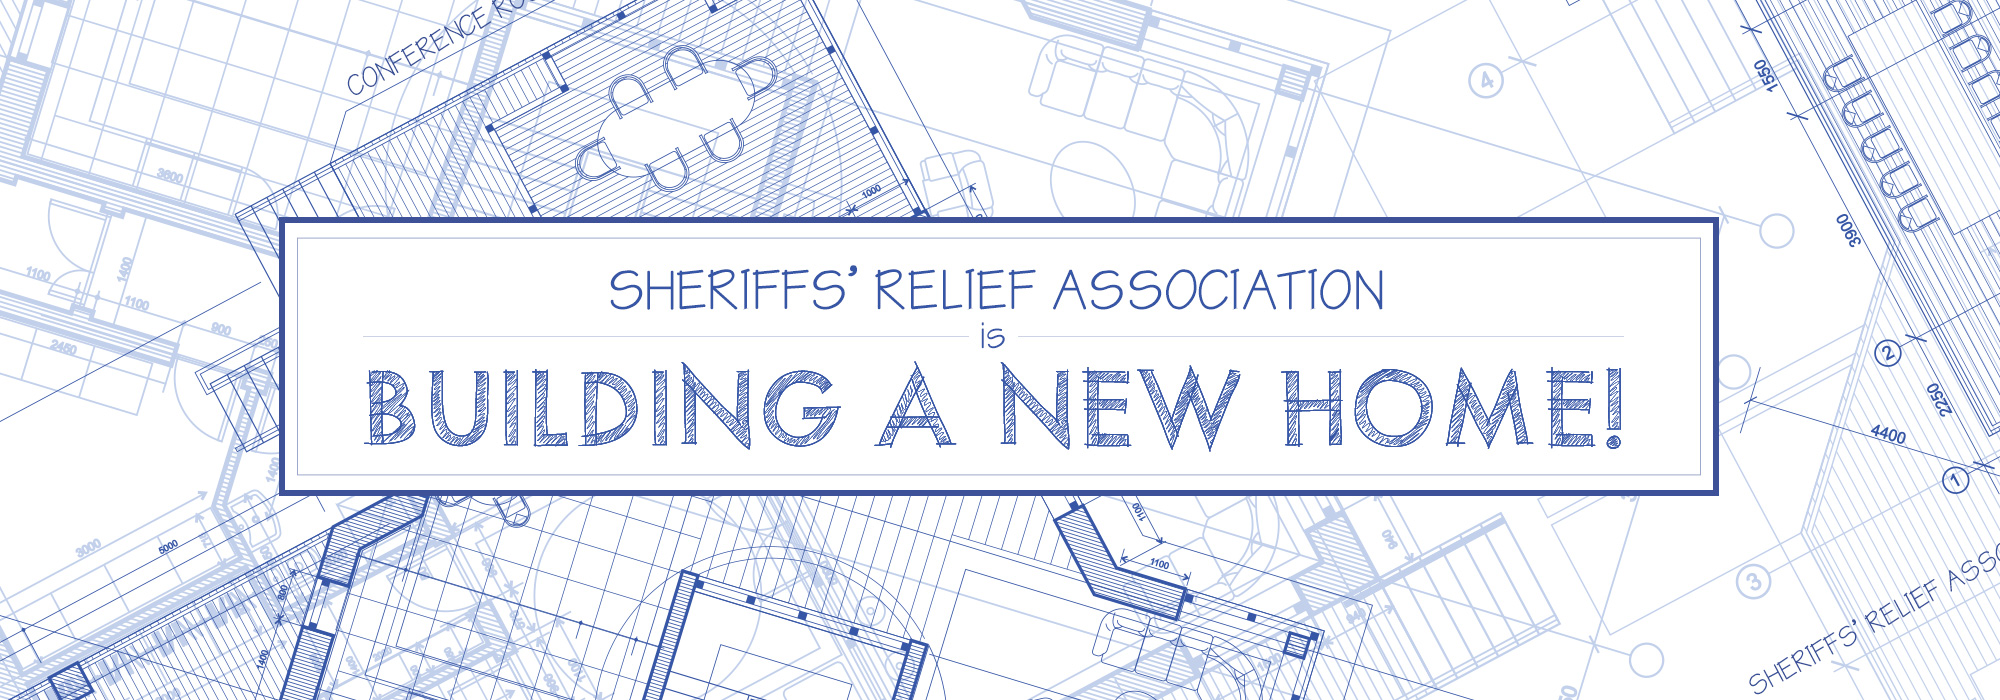 Sheriffs' Relief Association is Building a New Home!